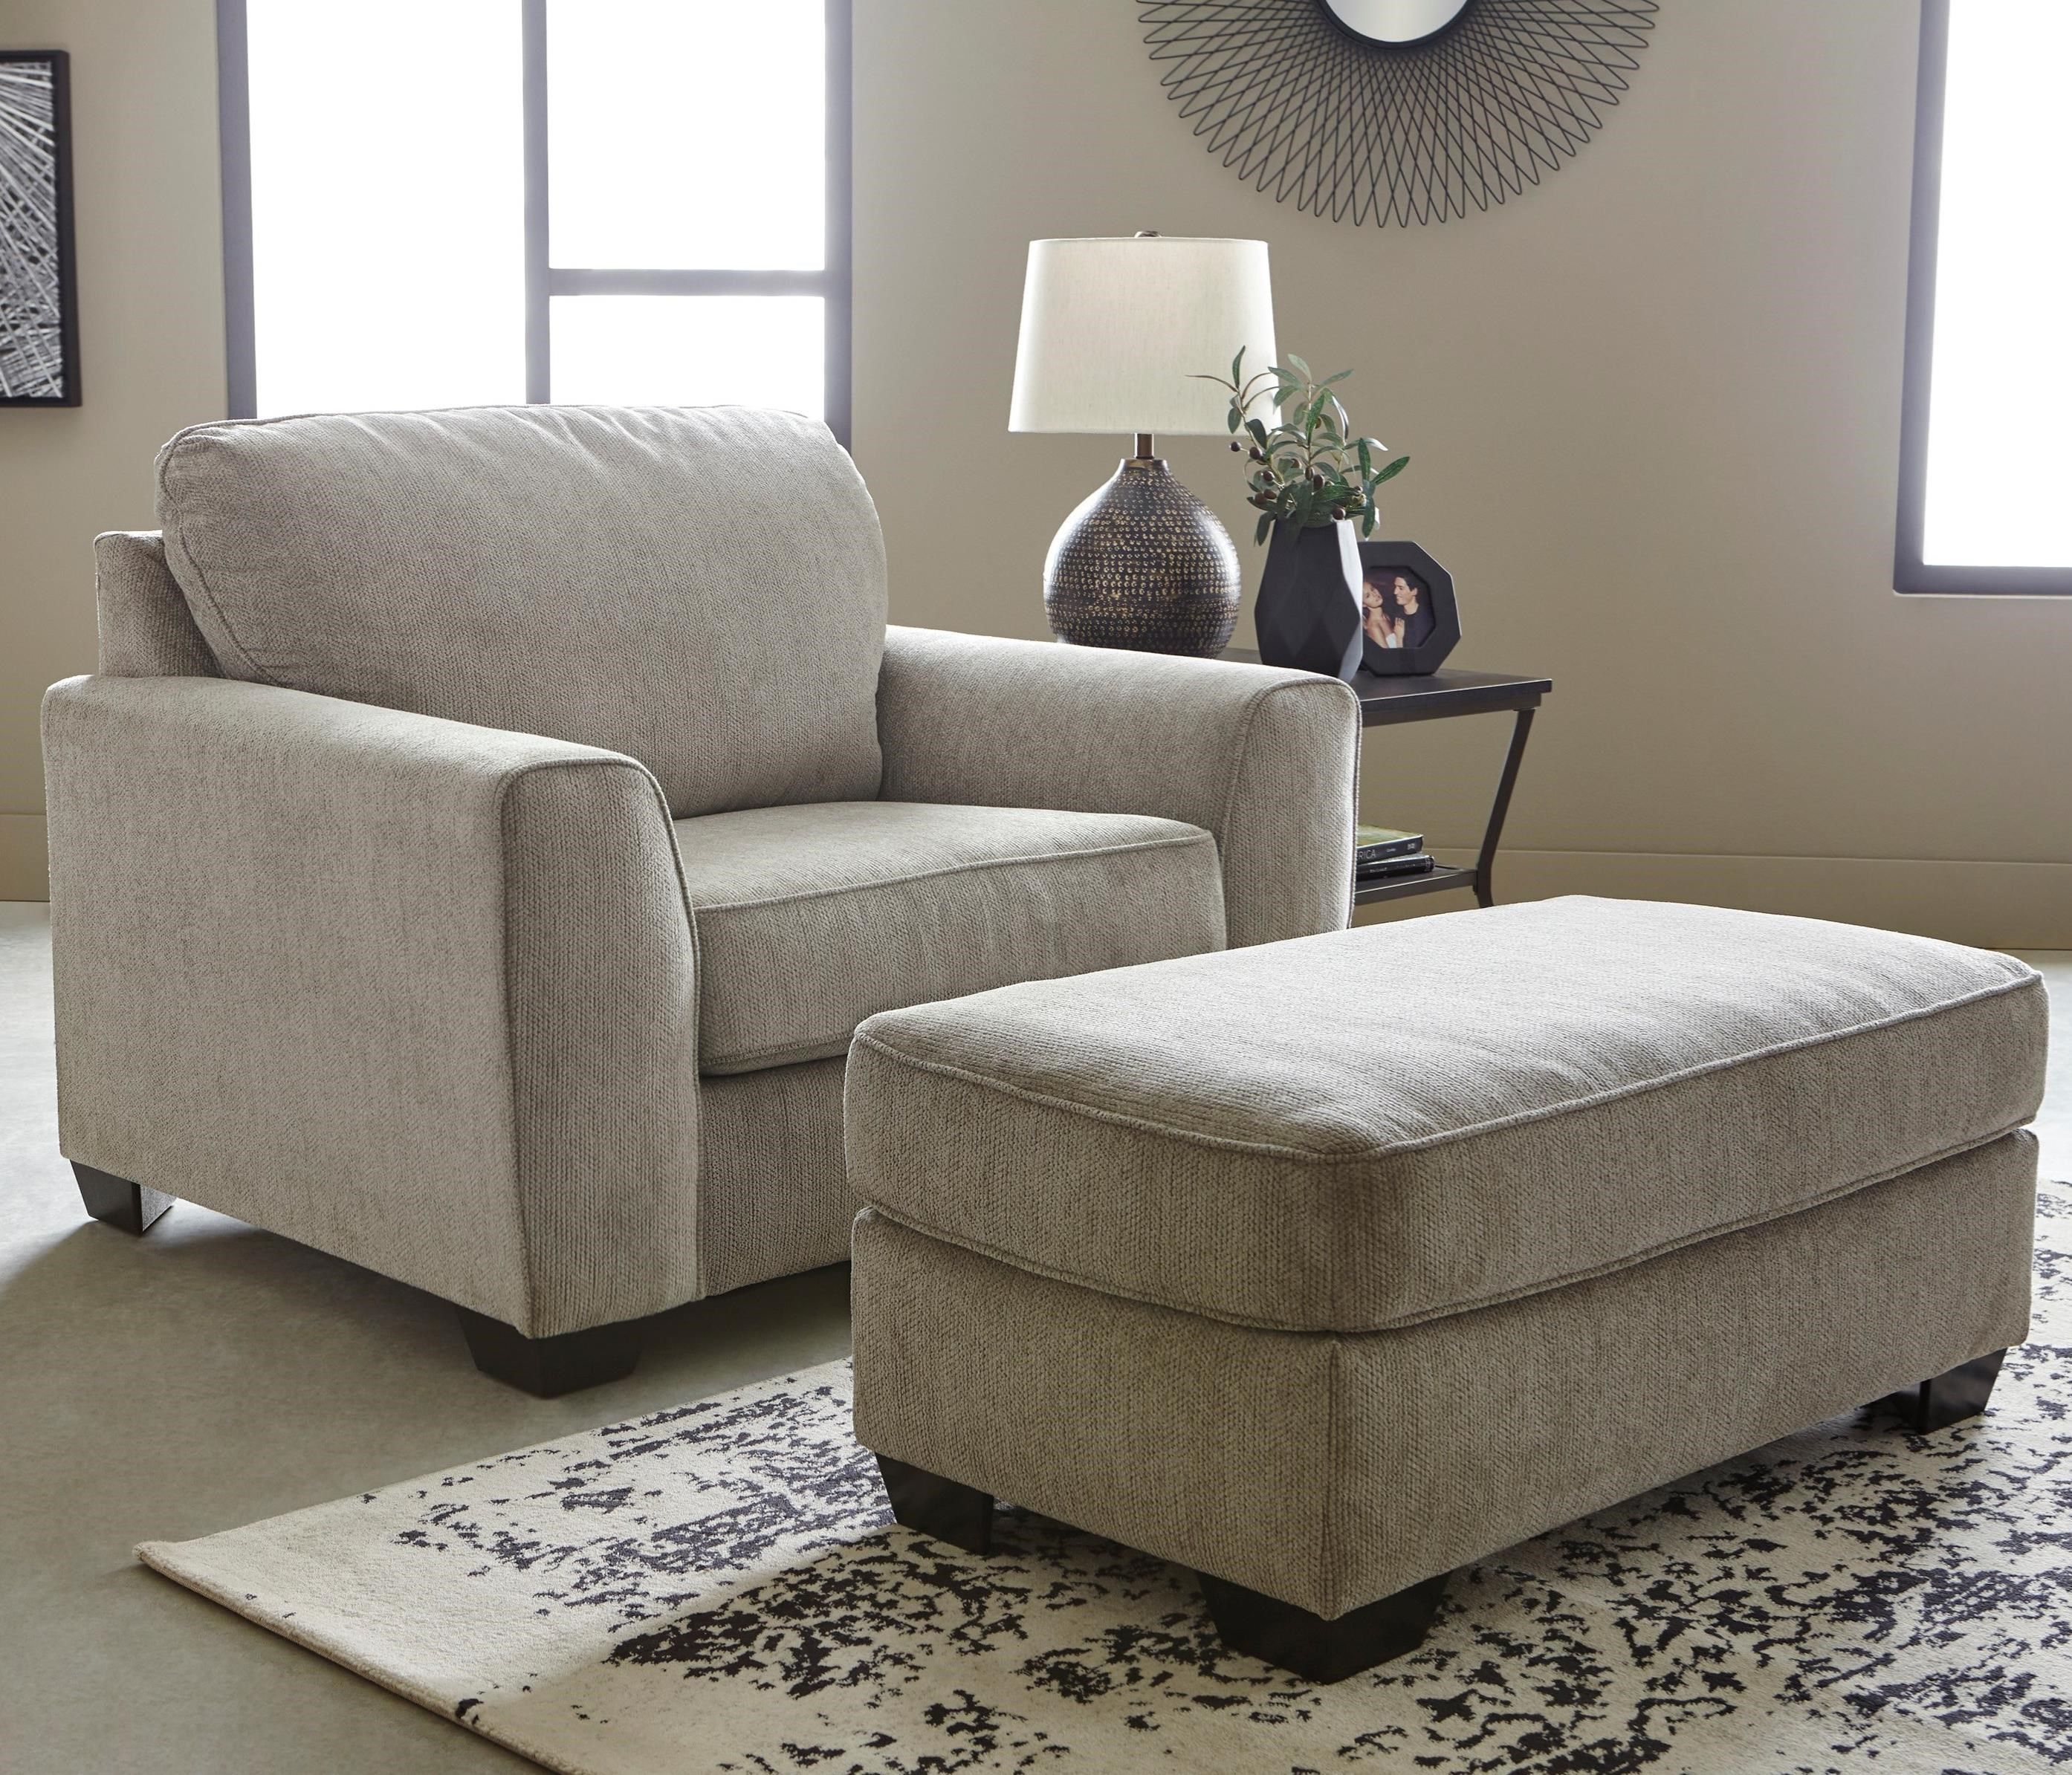 Chair and 1/2 & Ottoman Set